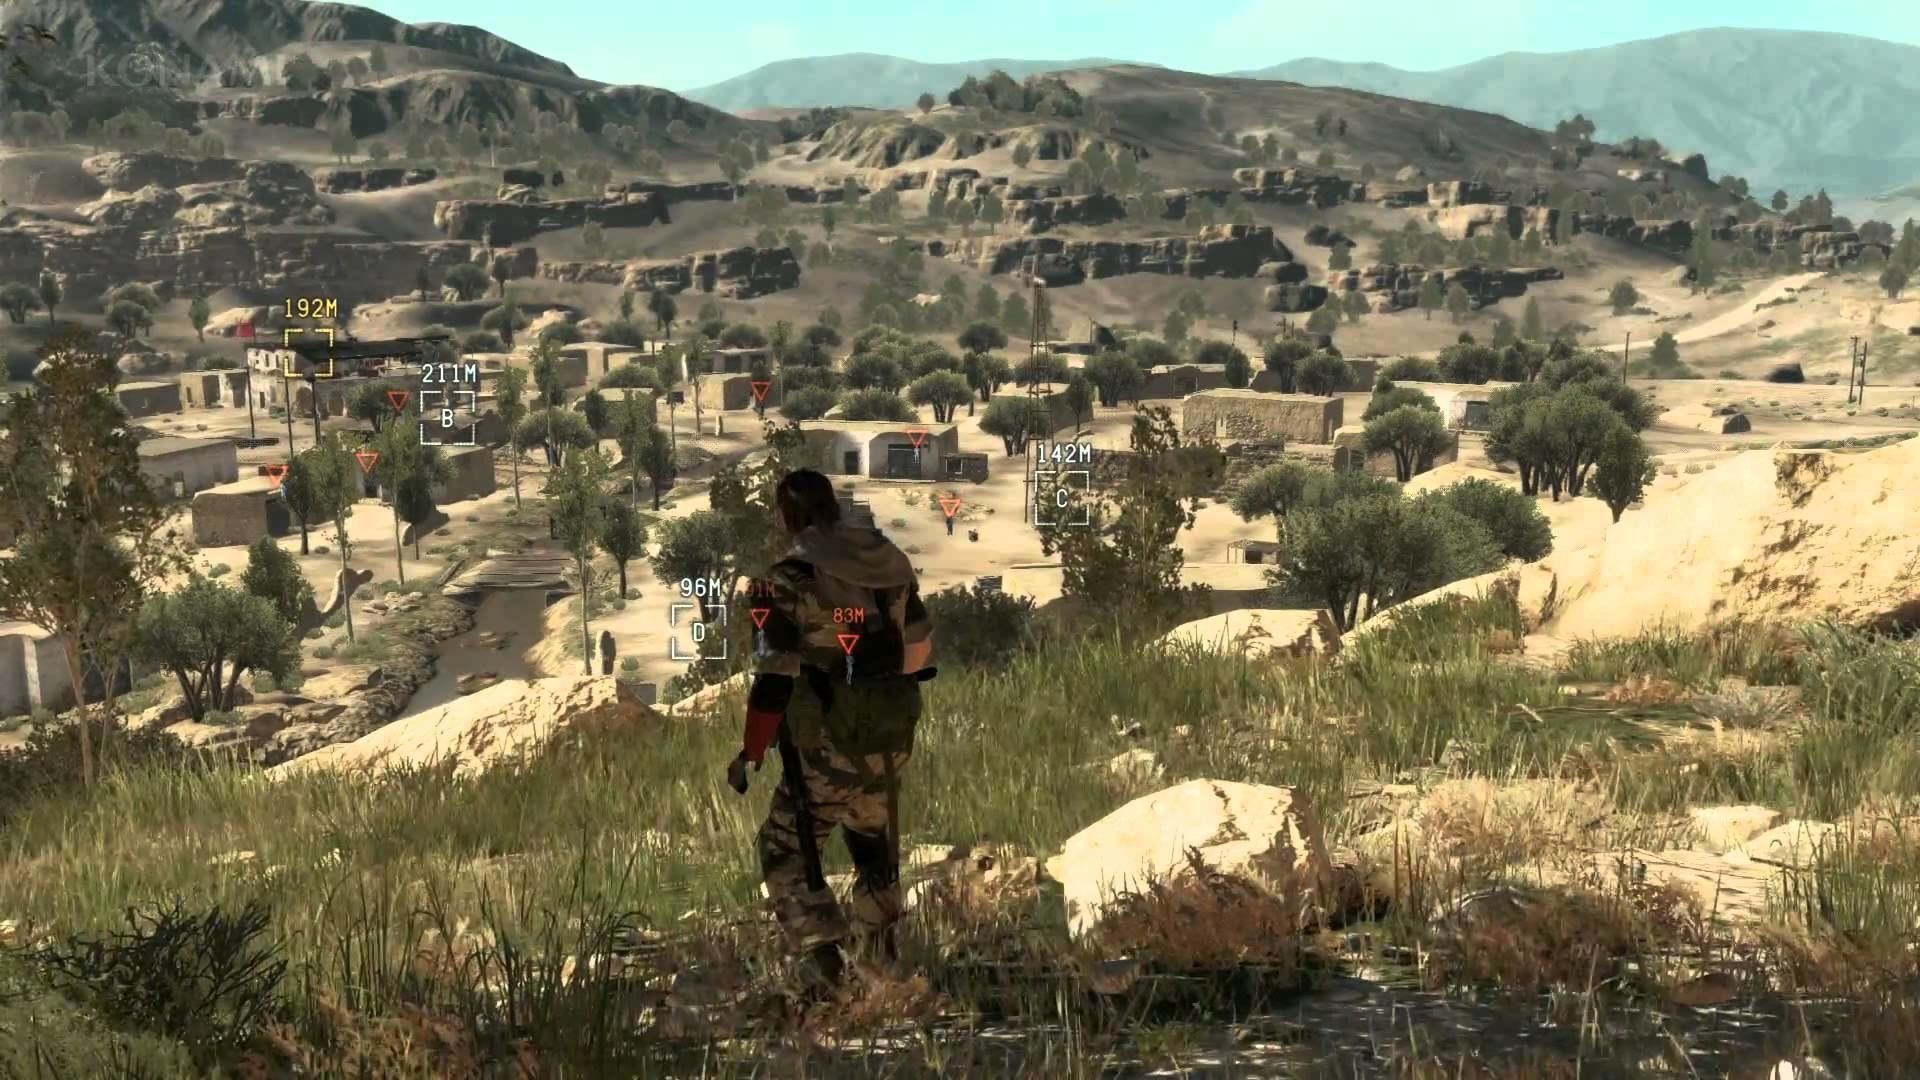 Metal Gear Solid 5: The Phantom Pain – E3 2014 Gameplay Demo with Dev  Comments (EN) – YouTube